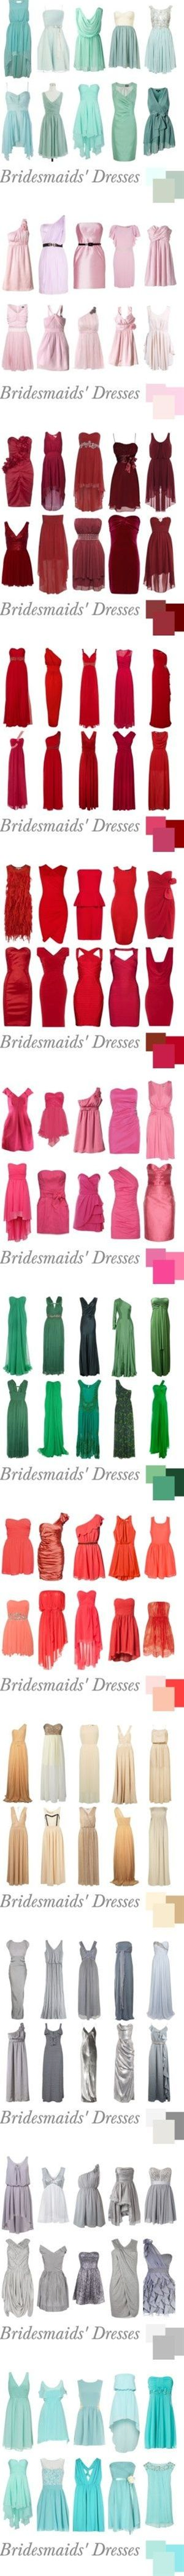 Bridesmaids - What look are you shooting for?